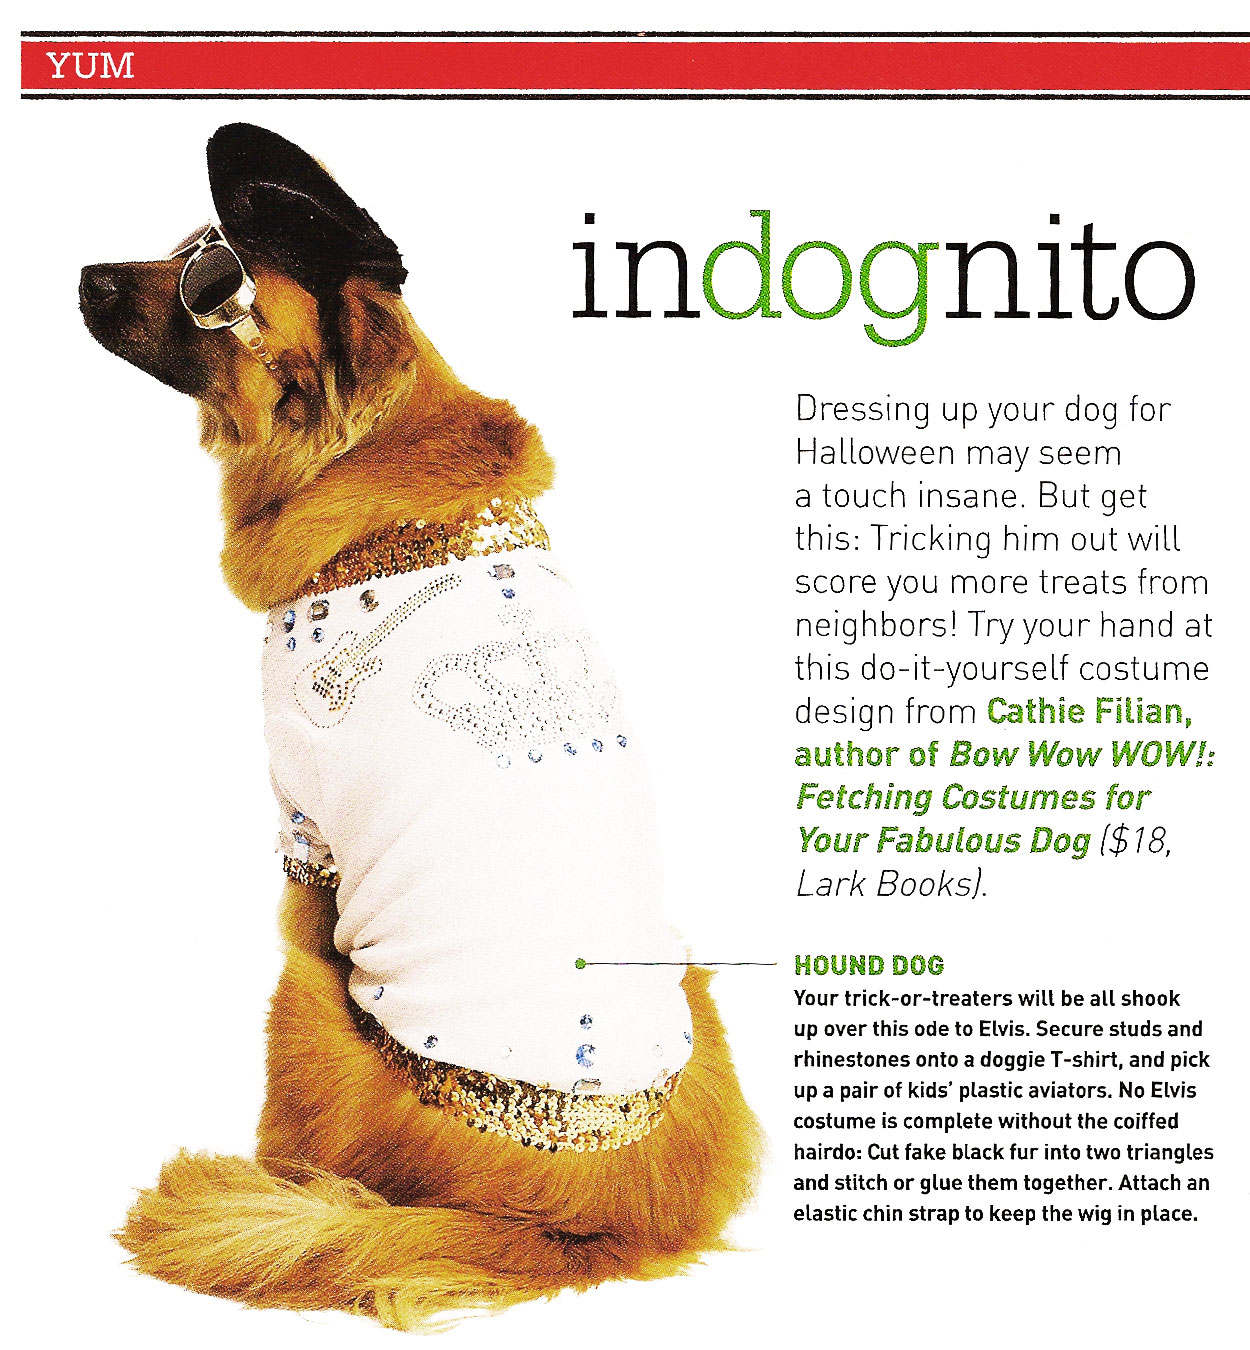 Pet Costume // Everyday with Rachael Ray